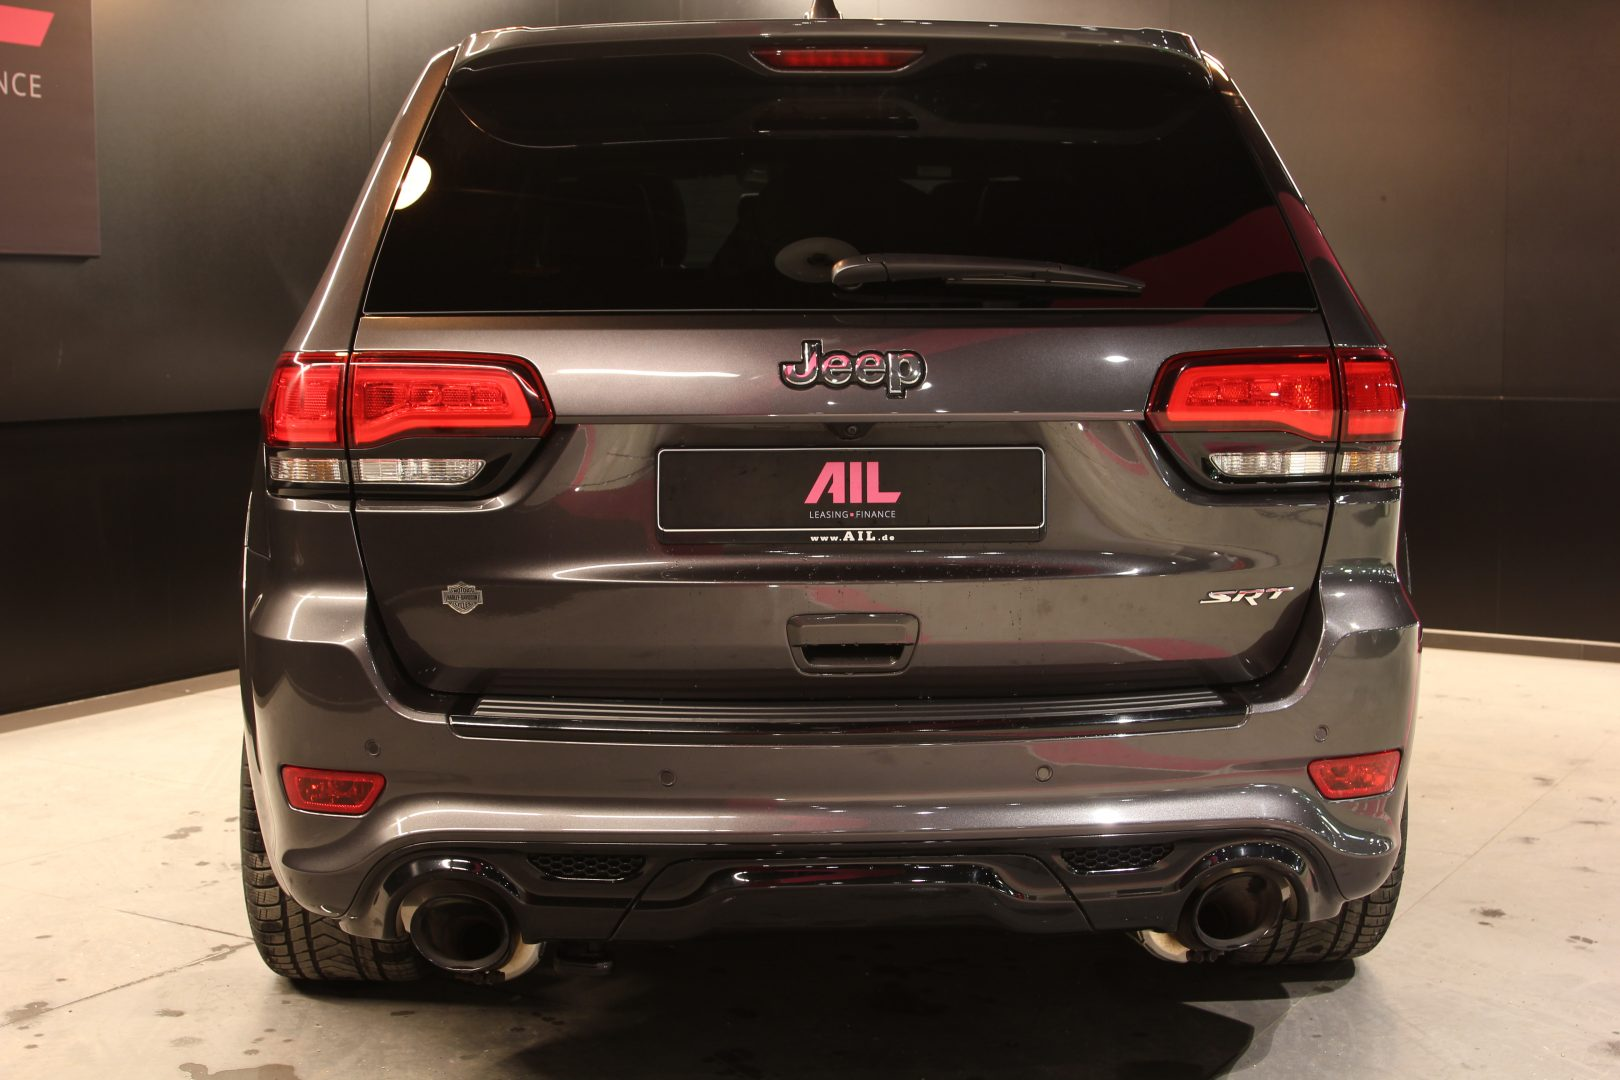 AIL Jeep Grand Cherokee SRT8 6.4 V8 HEMI 4